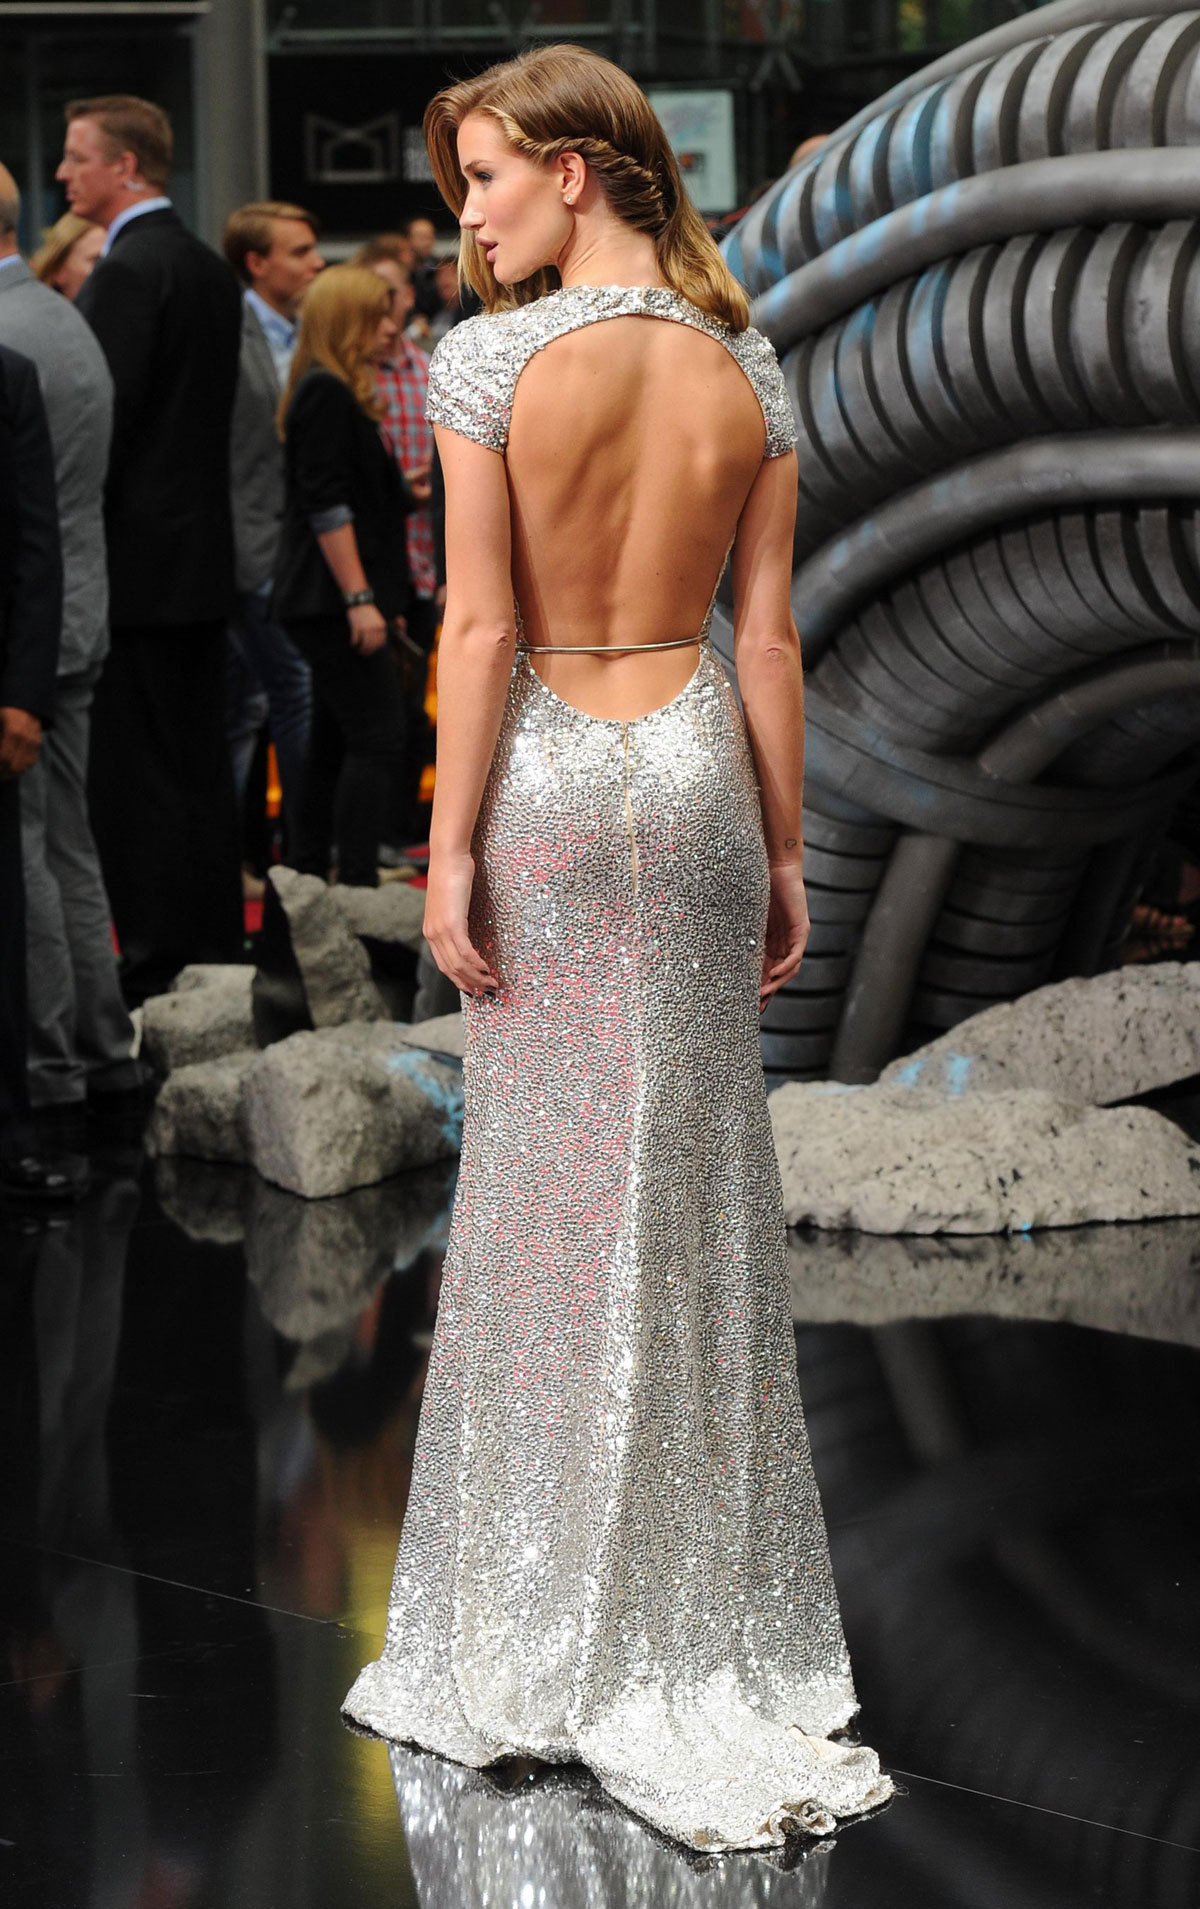 cahfune:  aleua:  perff  whoa love her dress